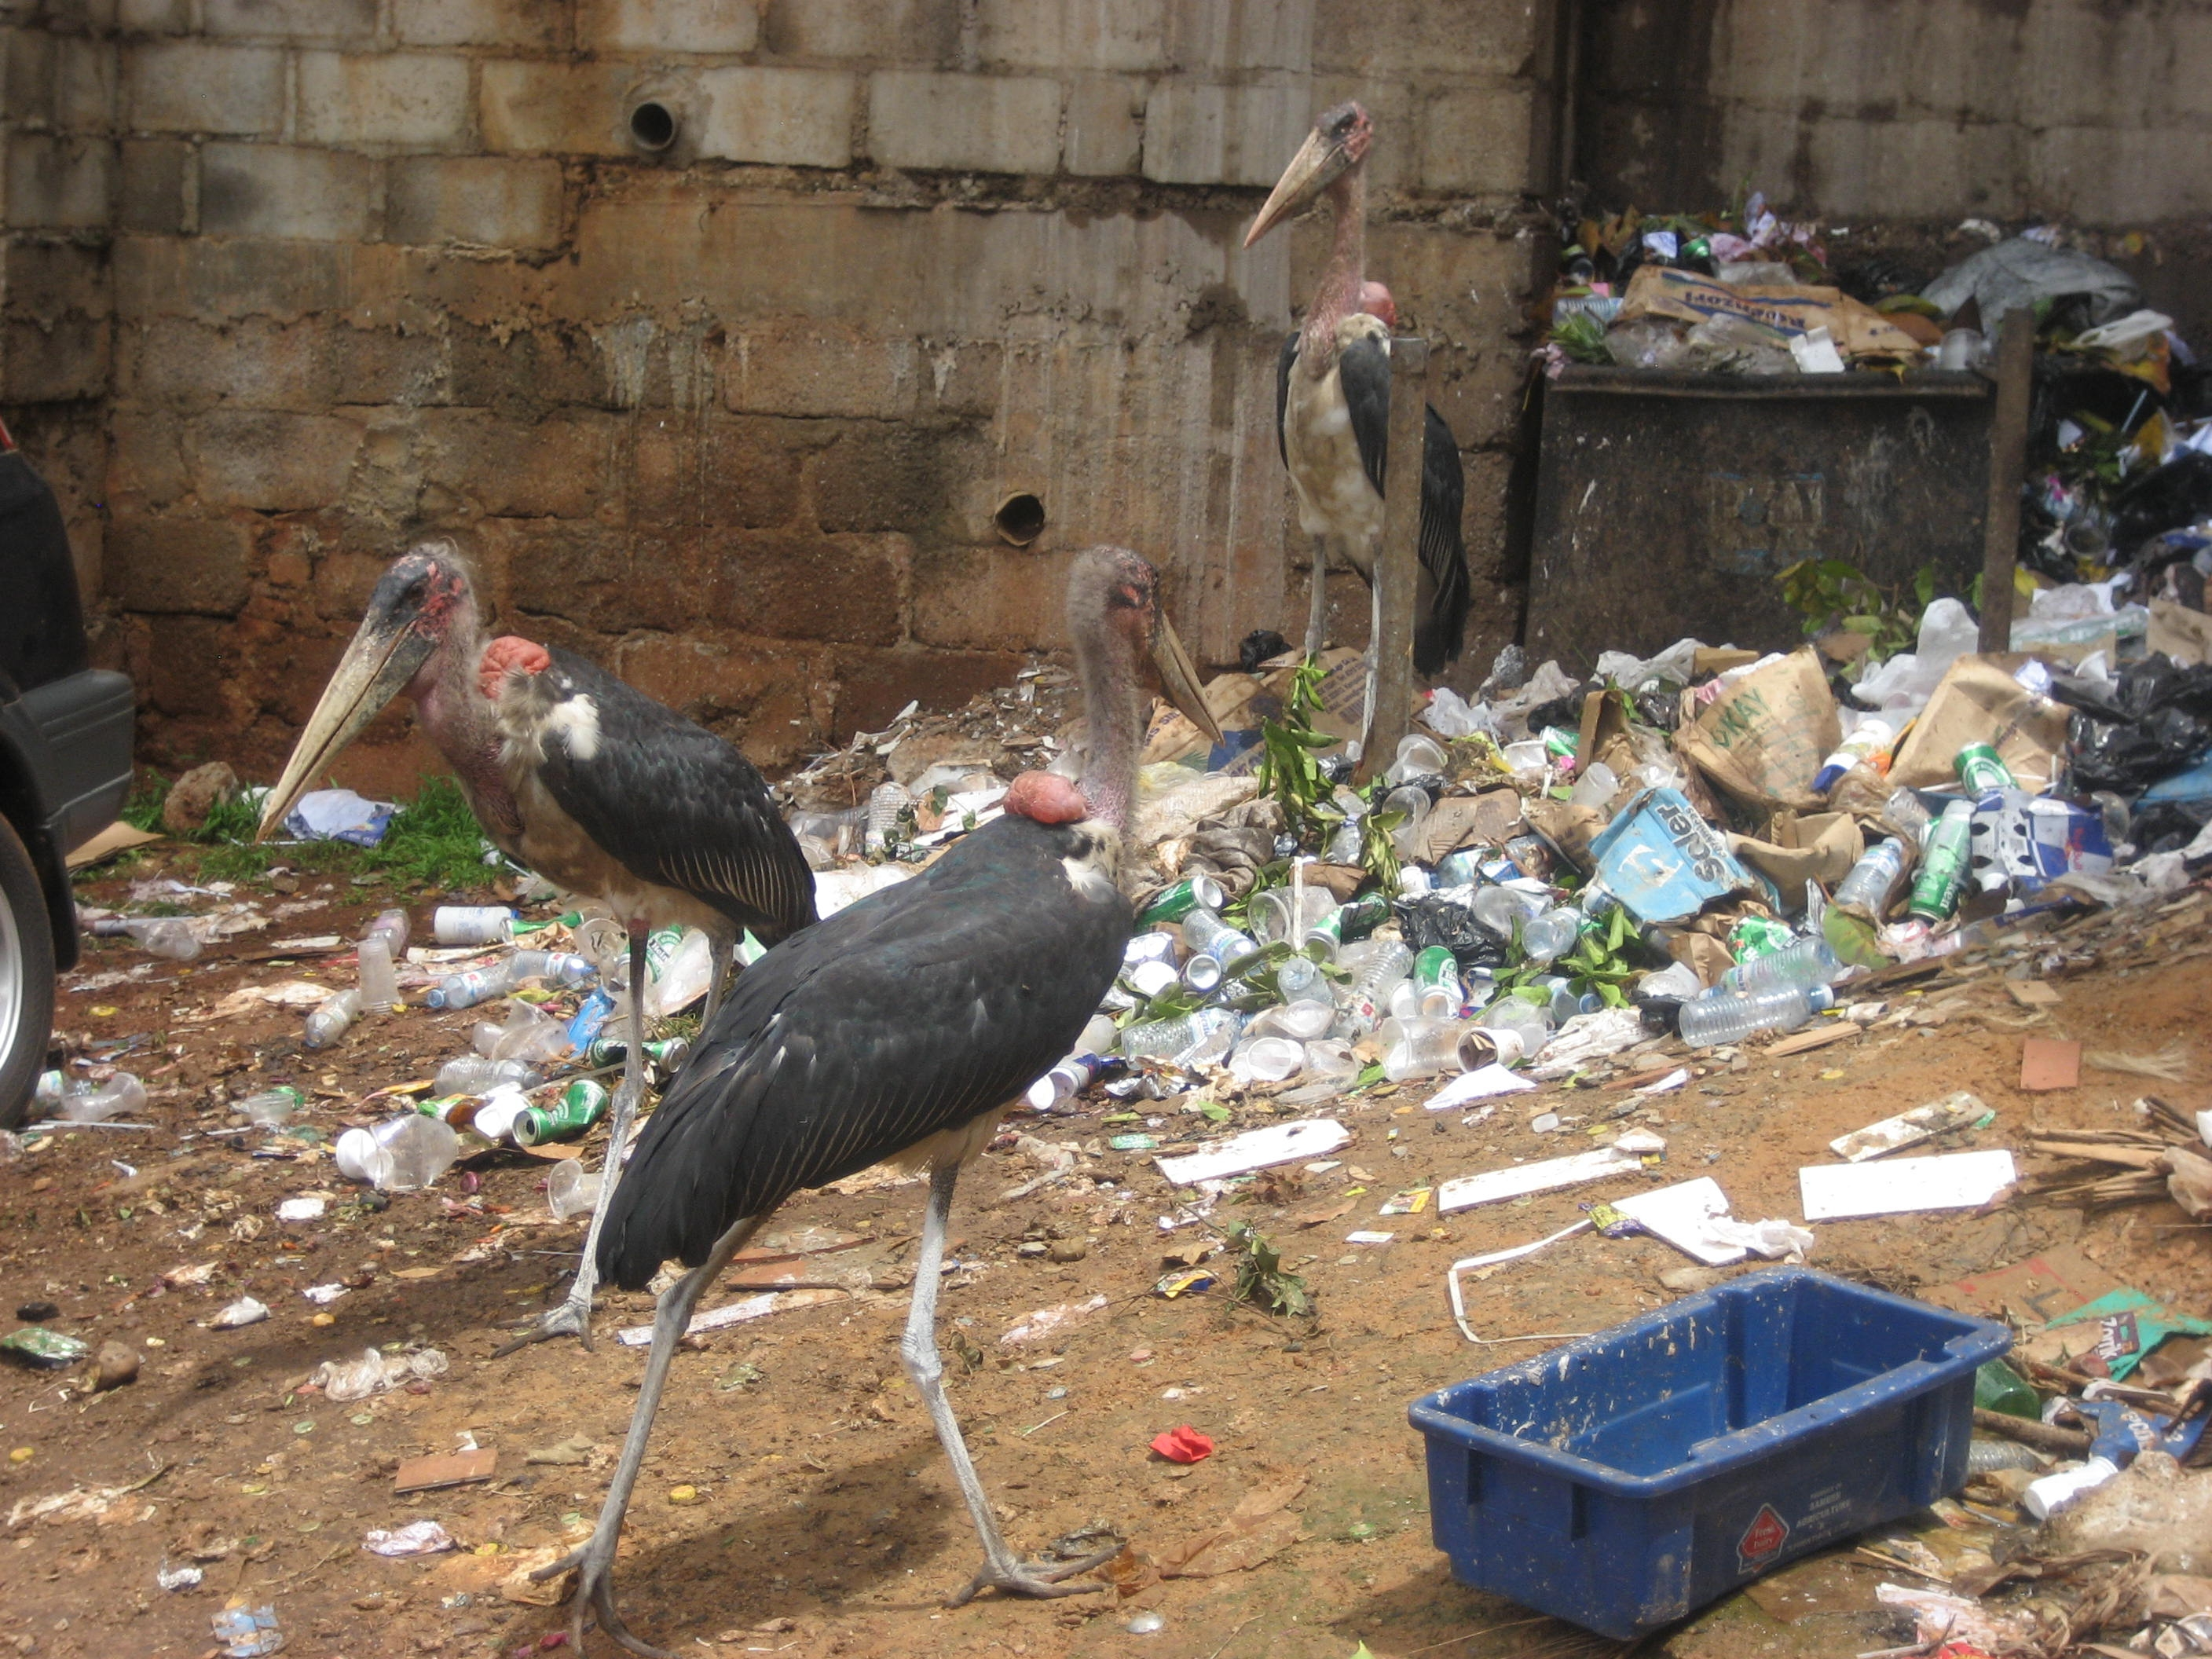 Marabou storks trash digging through trash in Kampala